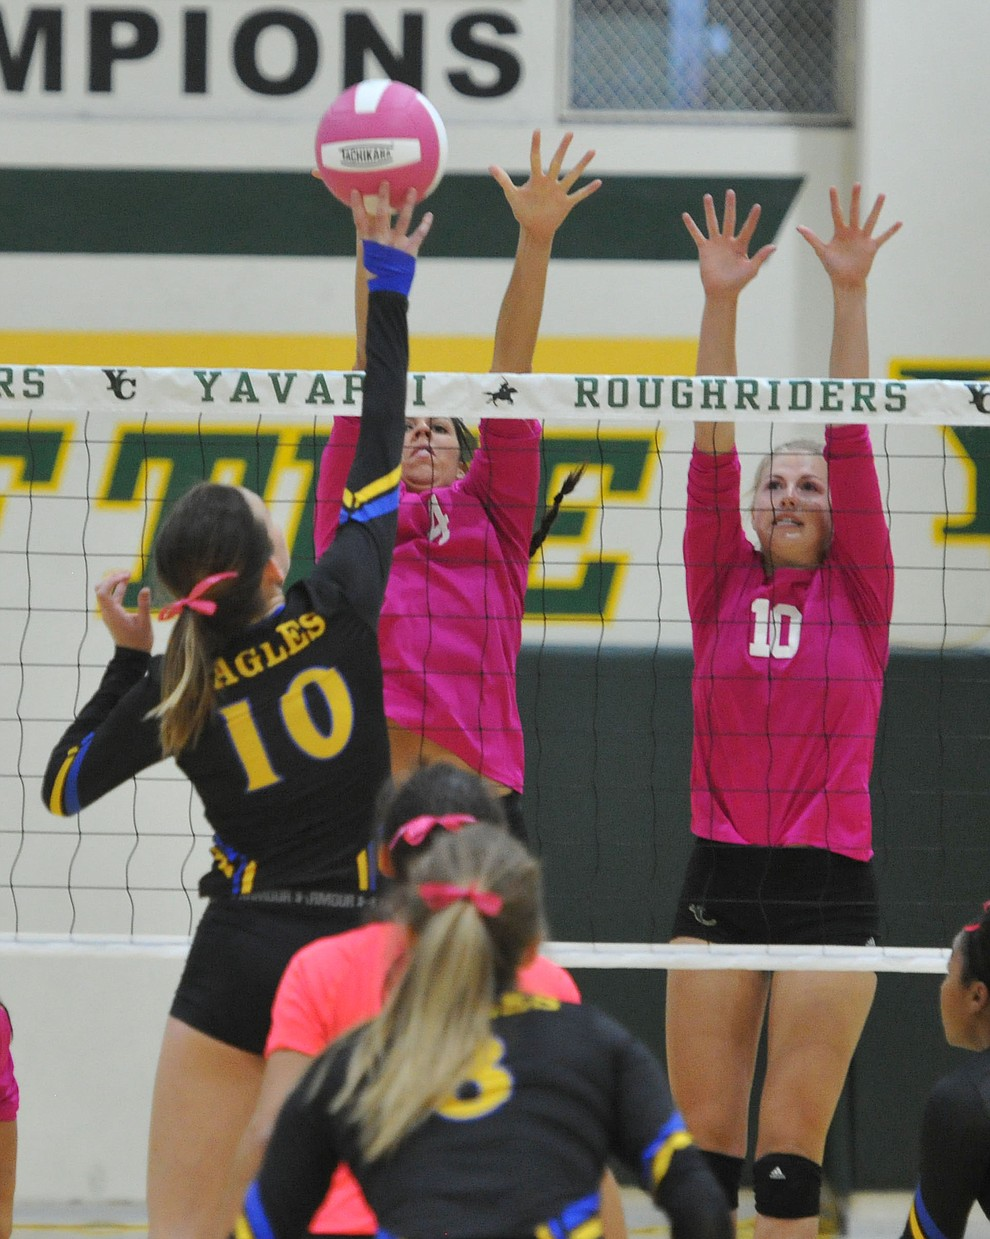 Yavapai's Kaytlin Yost (4) and Bailey Anderson (10) go up for a block on ERAU's Jalin Yoder (10) in the Battle Against Breast Cancer volleyball game Wednesday night at Yavapai College in Prescott. (Les Stukenberg/Courier)